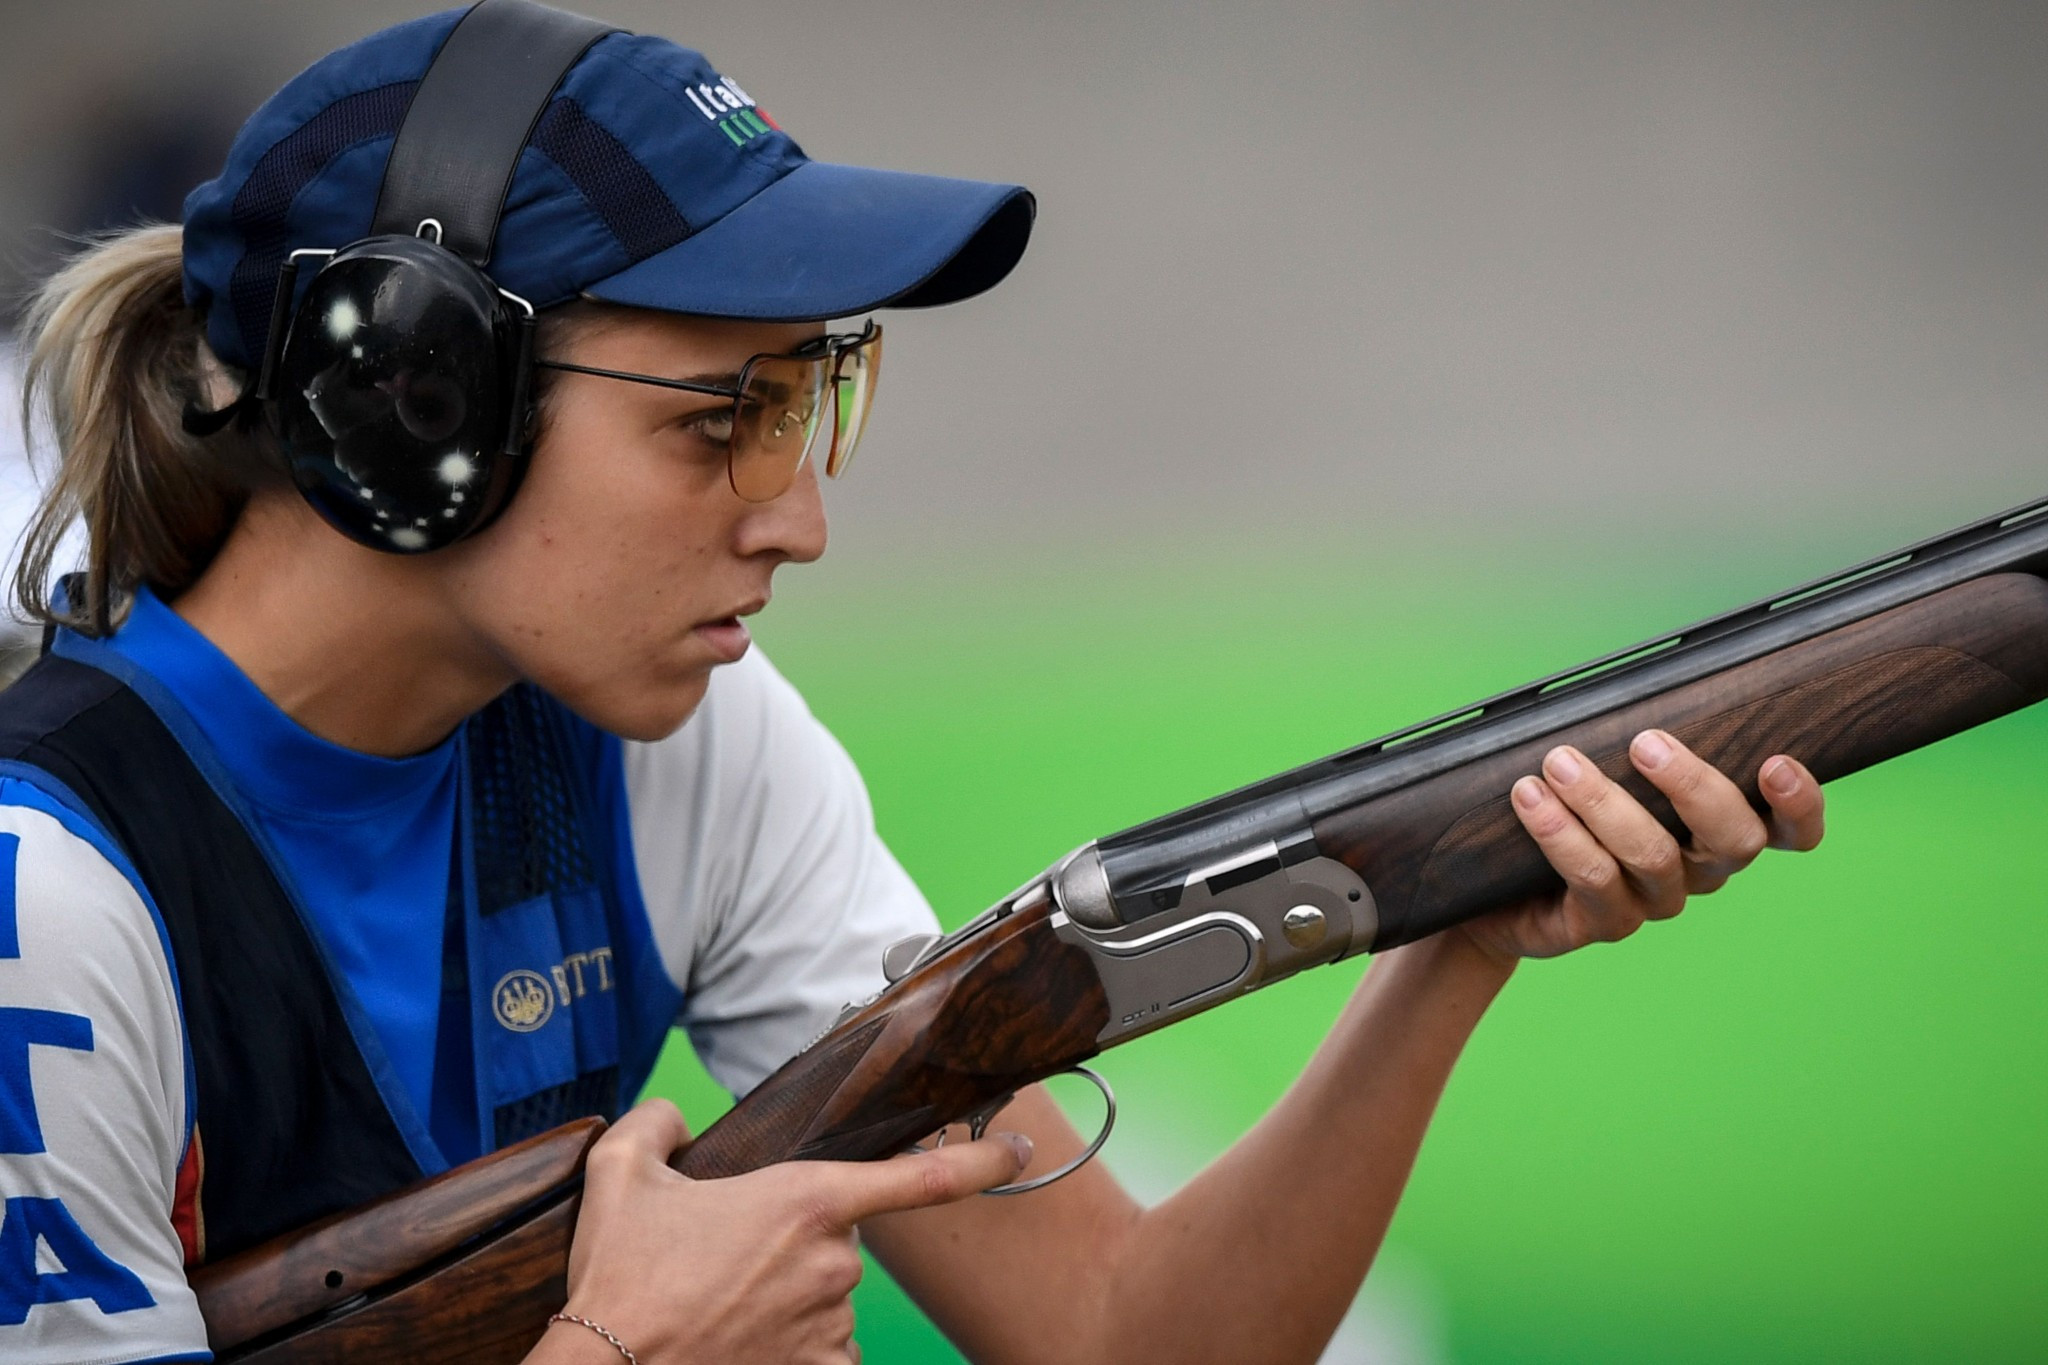 Italy's Jessica Rossi led the way in the women's trap qualification ©Getty Images